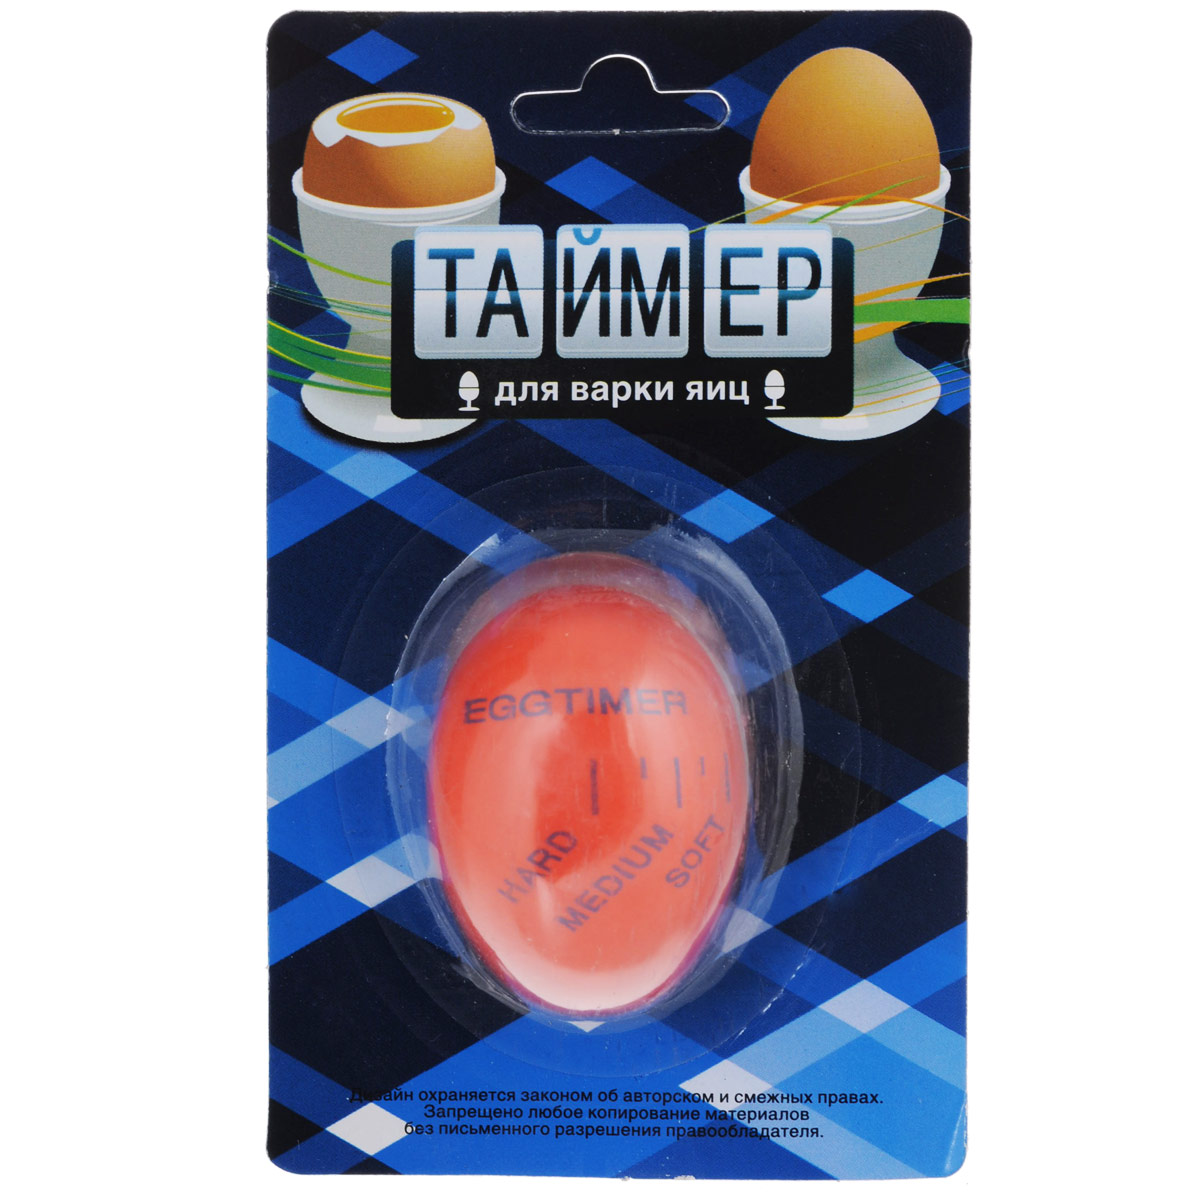 Таймер для варки яиц Egg Timer the classic crochet knitting skills textbook for beginners handmade essential books with clear big pictures in chinese